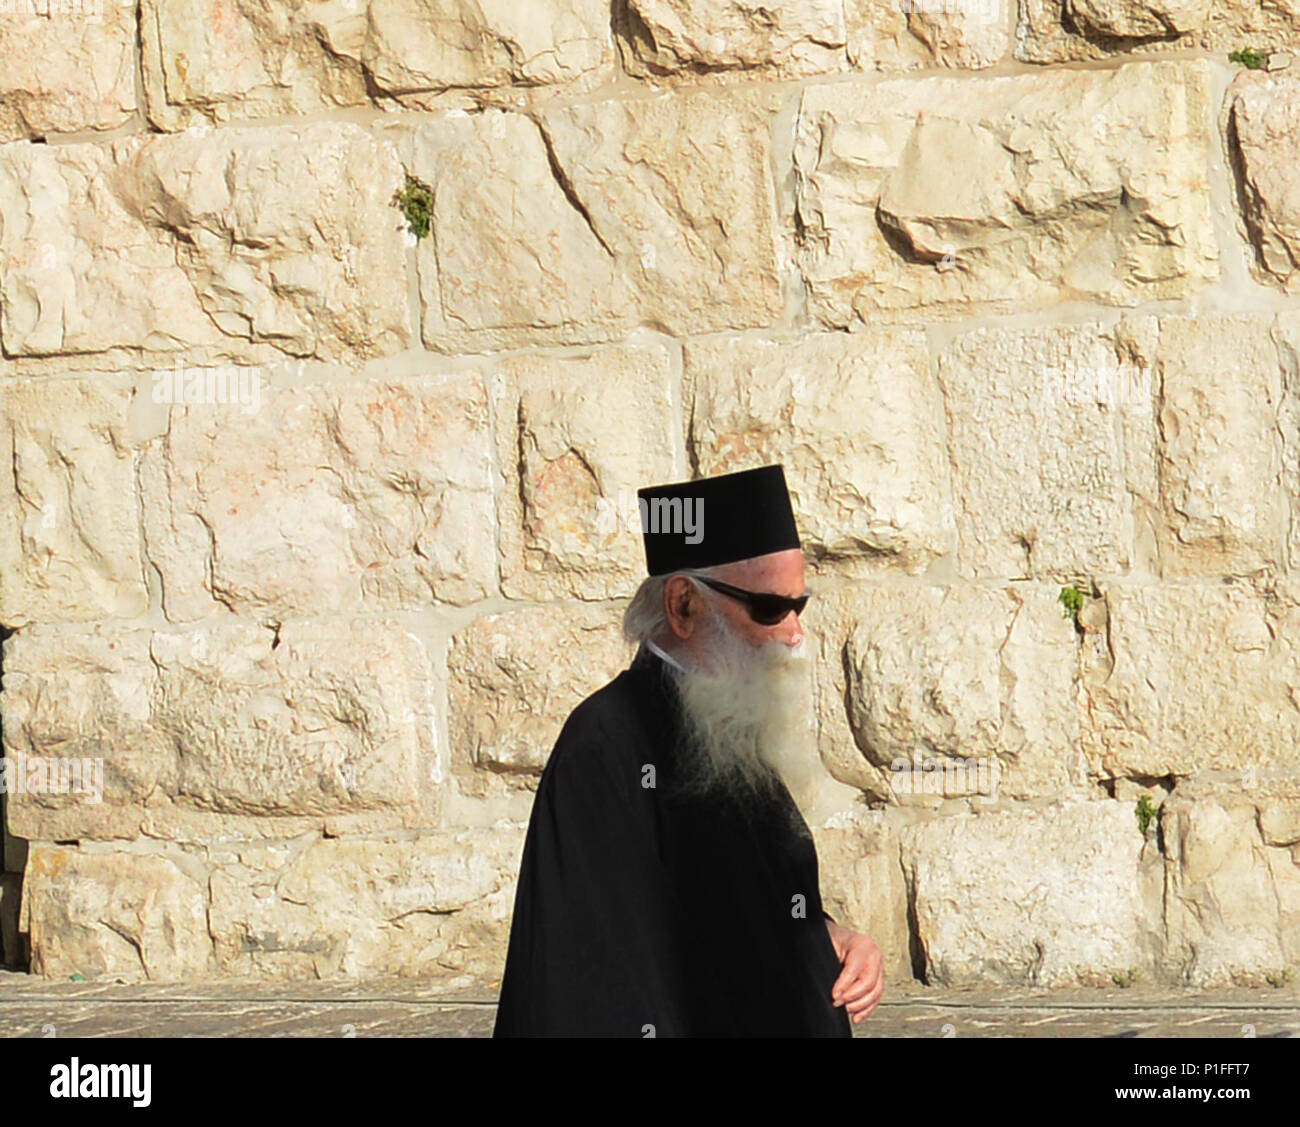 A Russian Orthodox priest in the old city of Jerusalem. - Stock Image